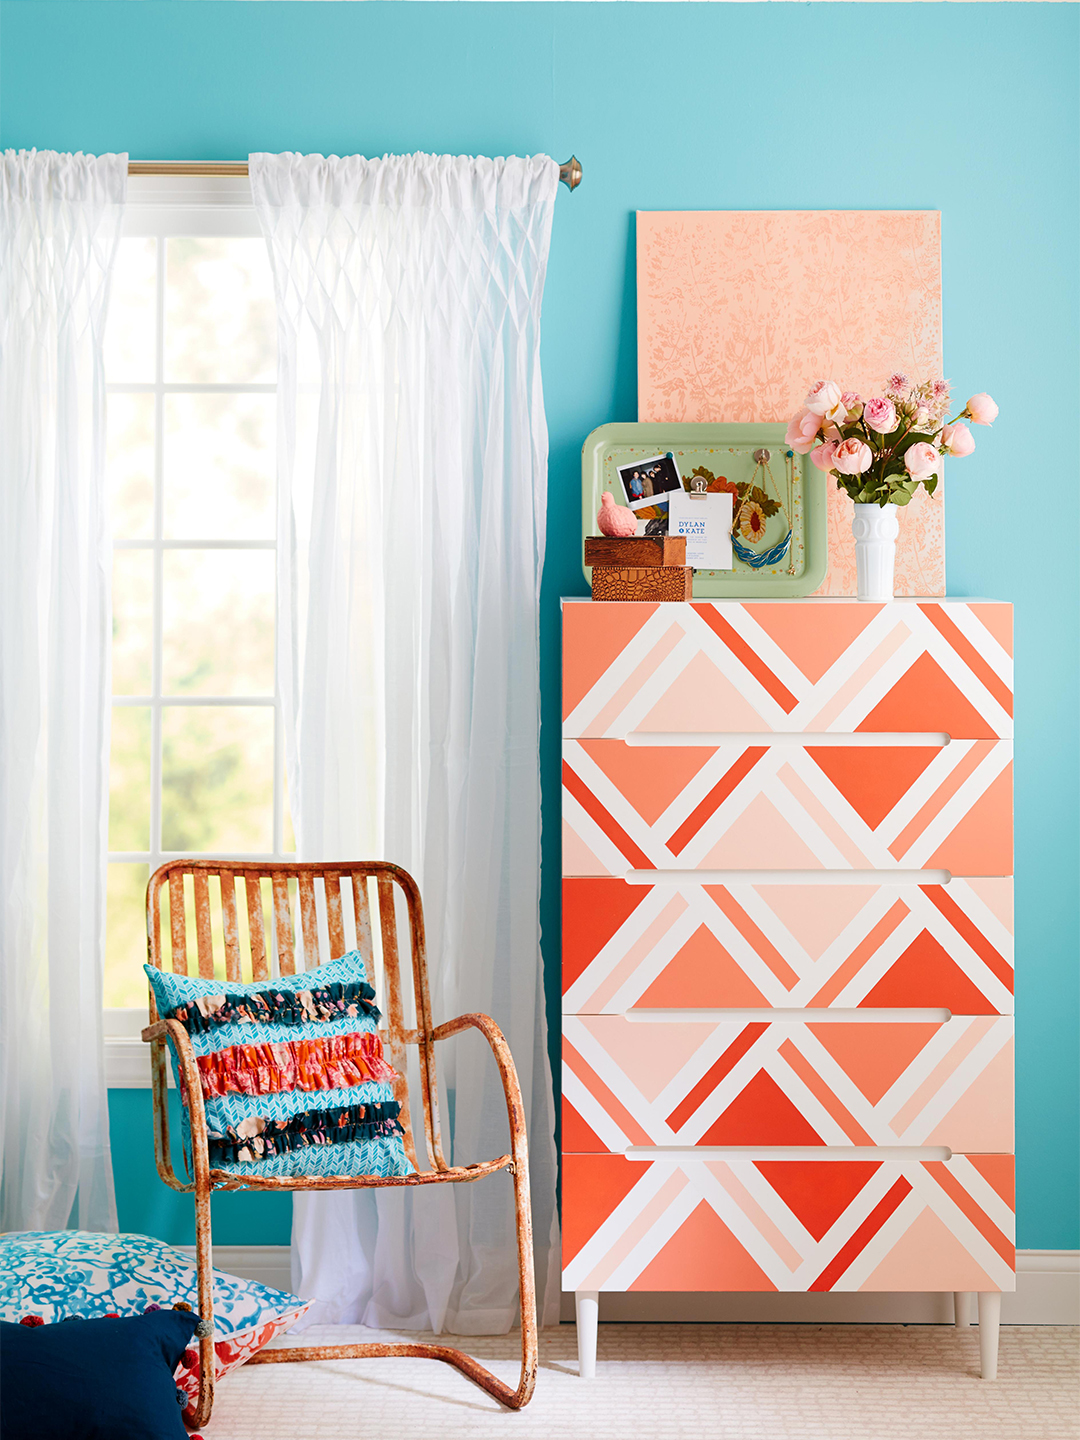 orange and white geometric dresser in teal bedroom